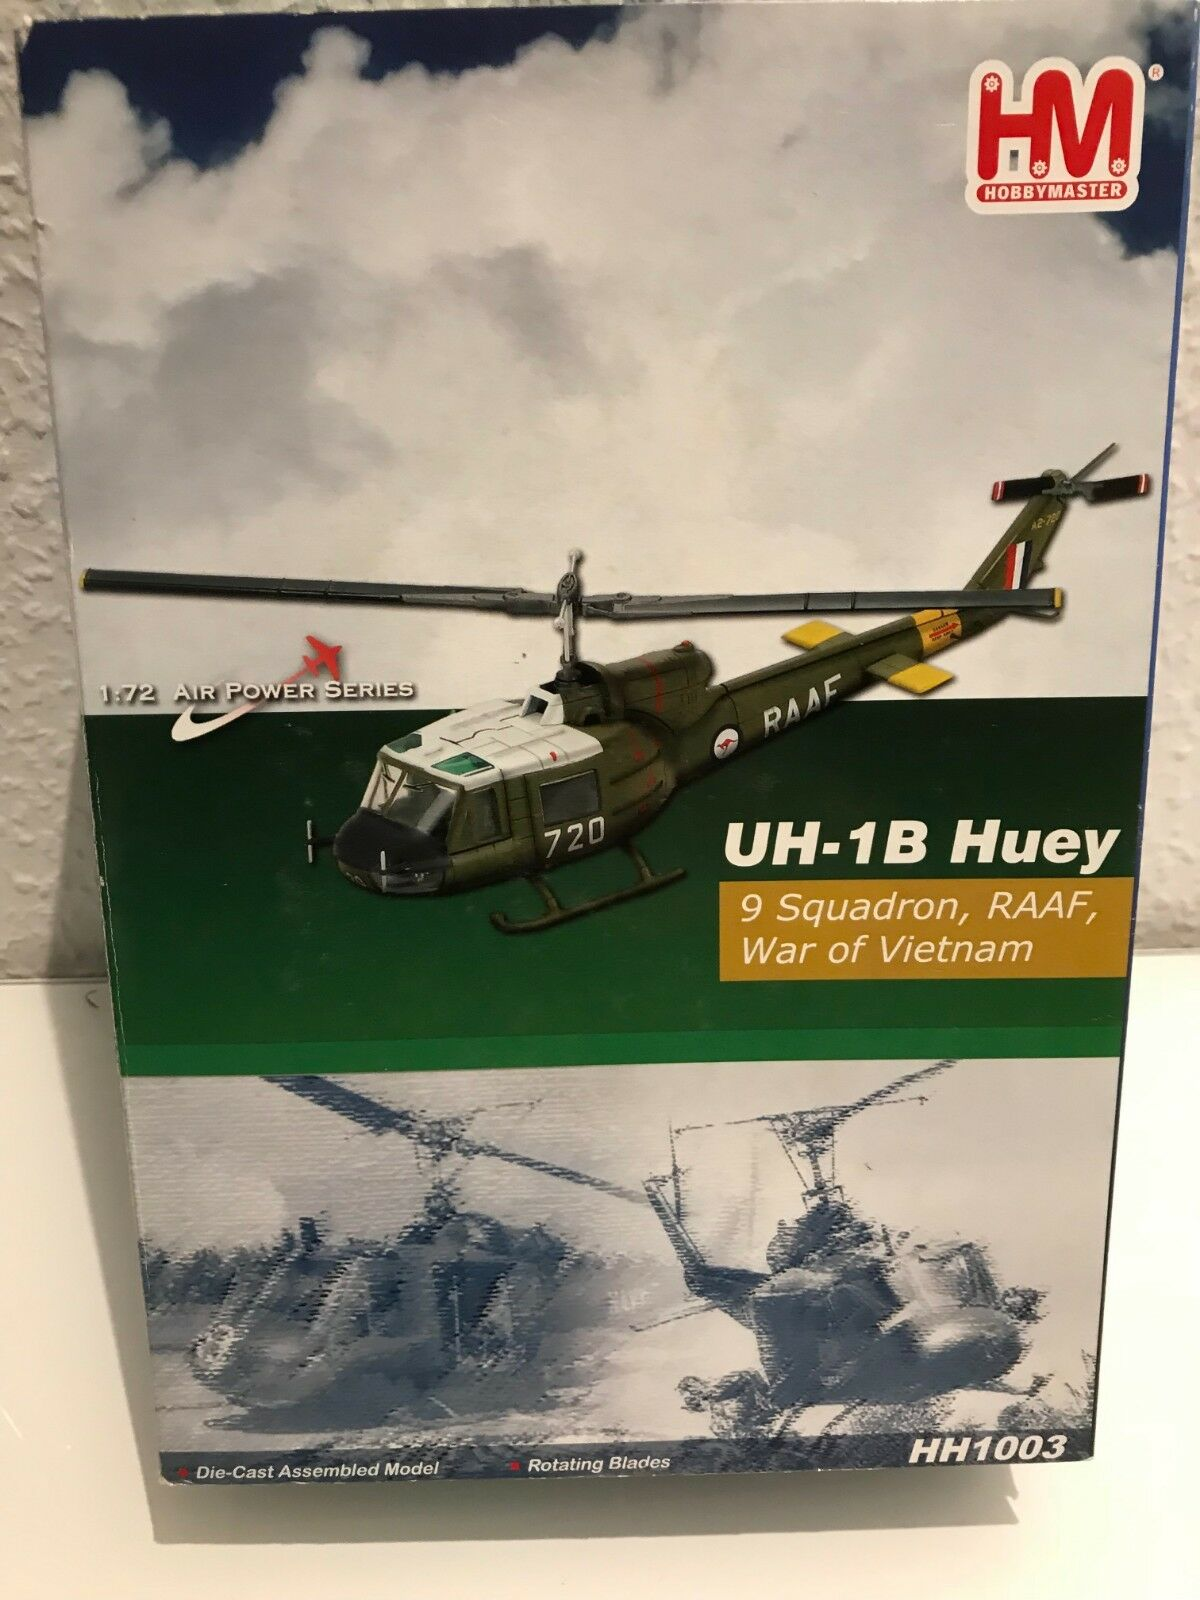 Hobby Master HM hh1002 Bell uh-1b Huey JGSDF 1st Helicopter Bgd le JAPON, 1982 1 72